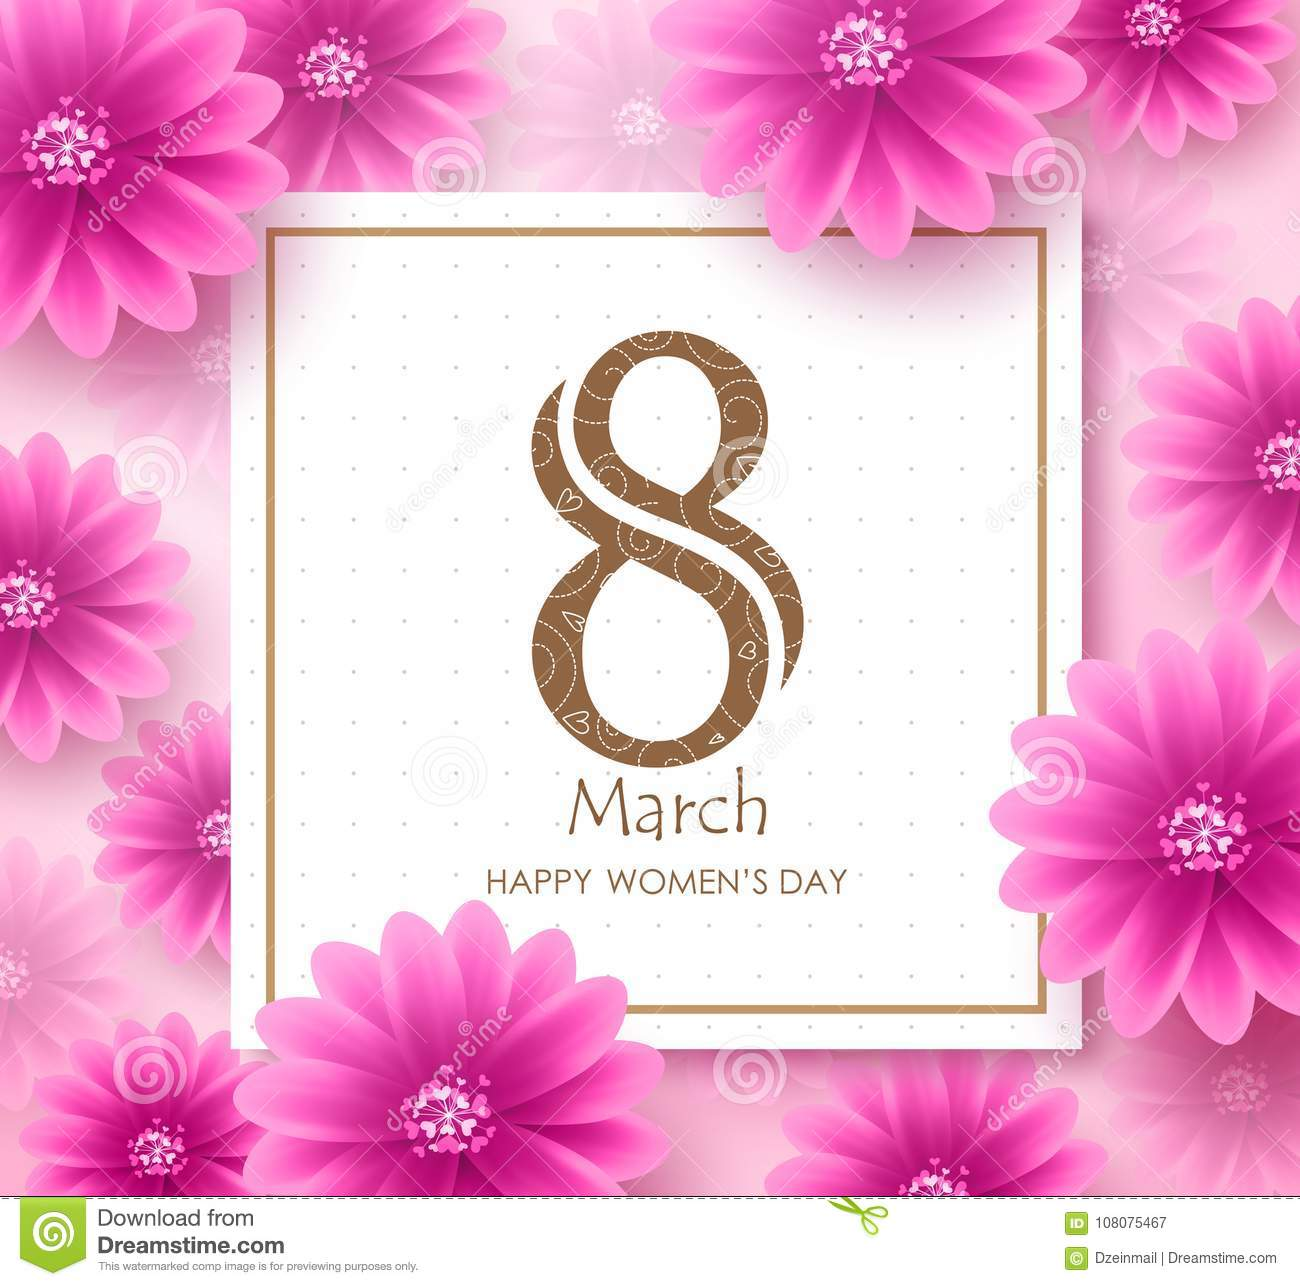 Women`s day vector banner design template with march 8 text